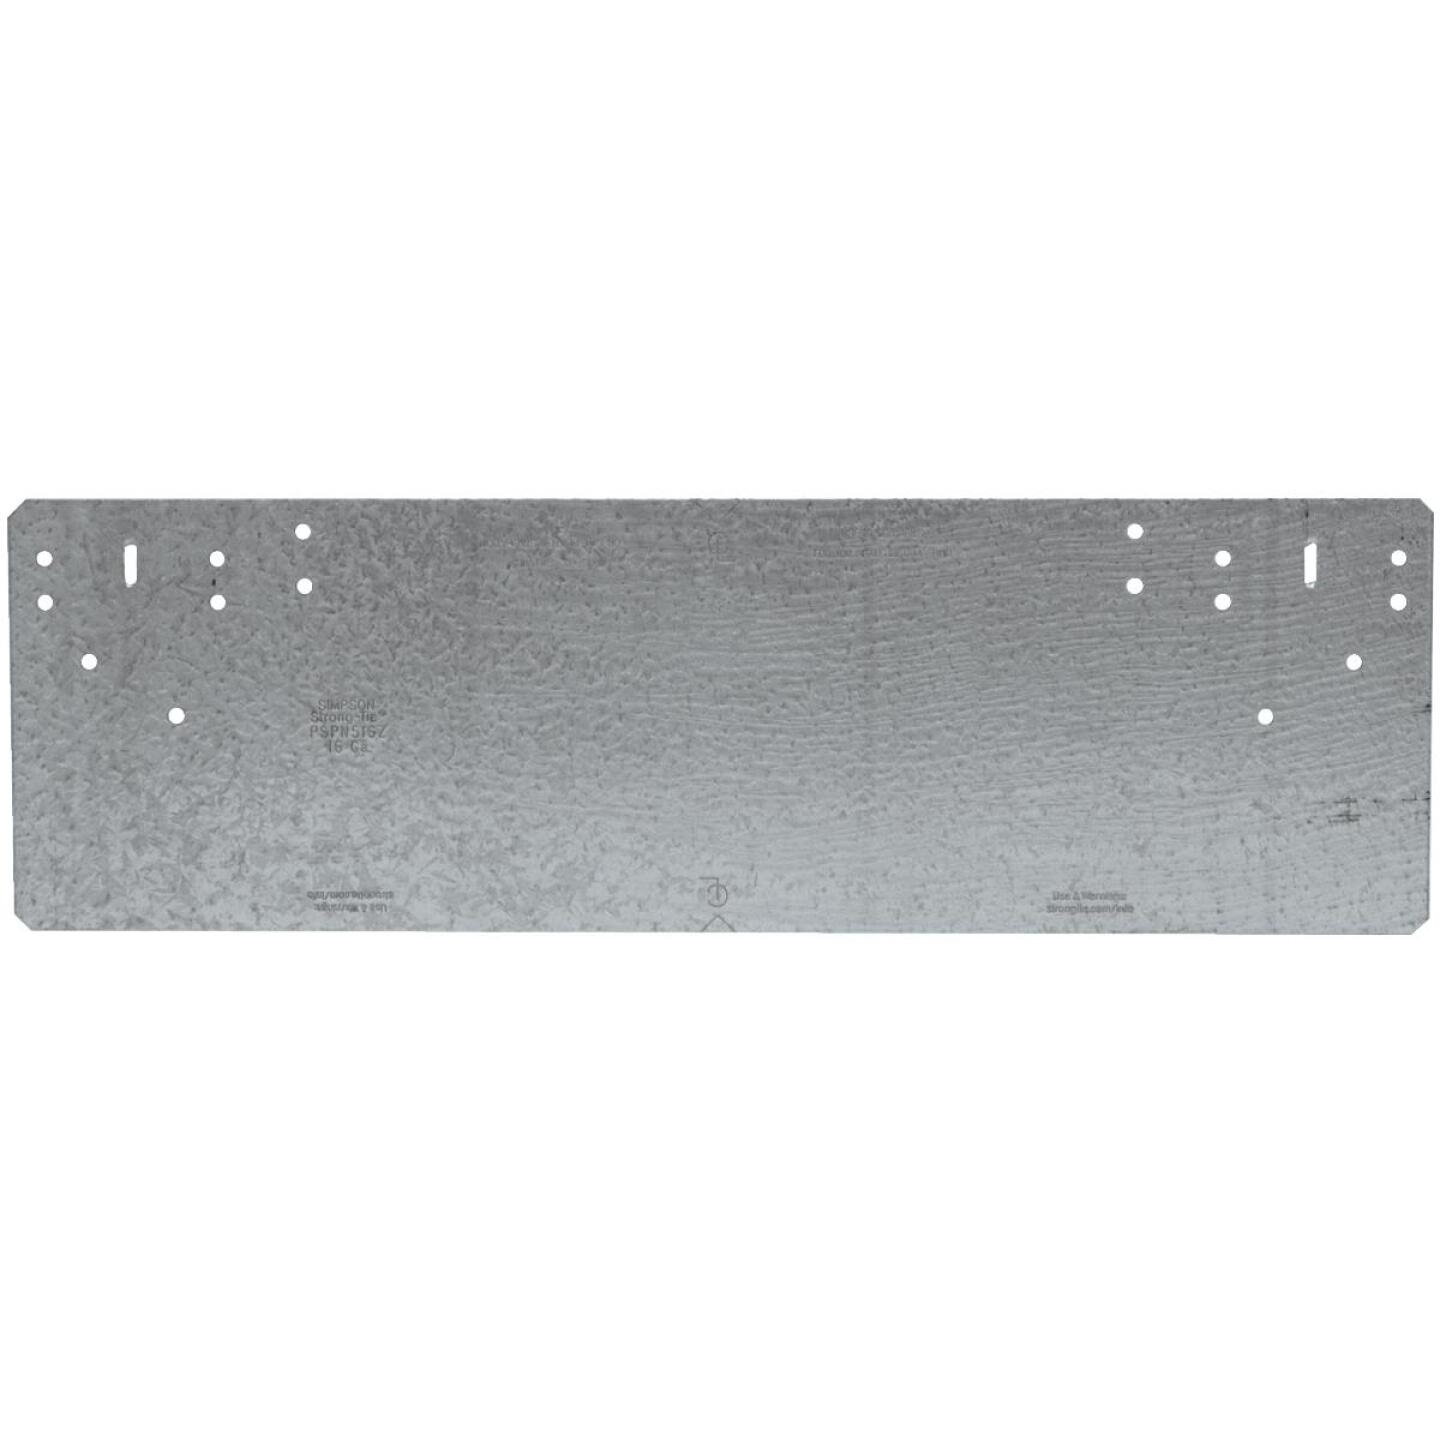 Simpson Strong-Tie 5 in. W x 16-5/16 in. L Galvanized Steel 16 Gauge Protection Plate Image 1